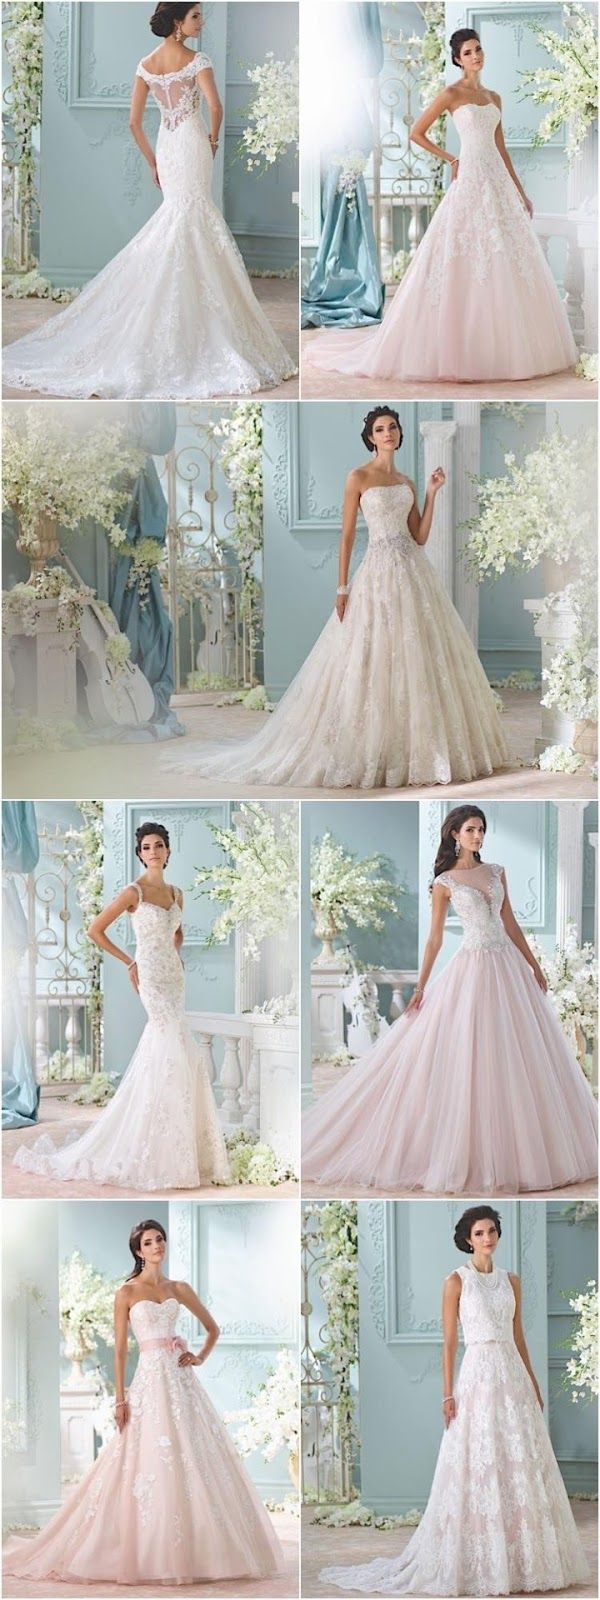 25 The Most Gorgeous Wedding Dresses 25 The Most Gorgeous Wedding Dresses 25 The Most Gorgeous Wedding Dresses